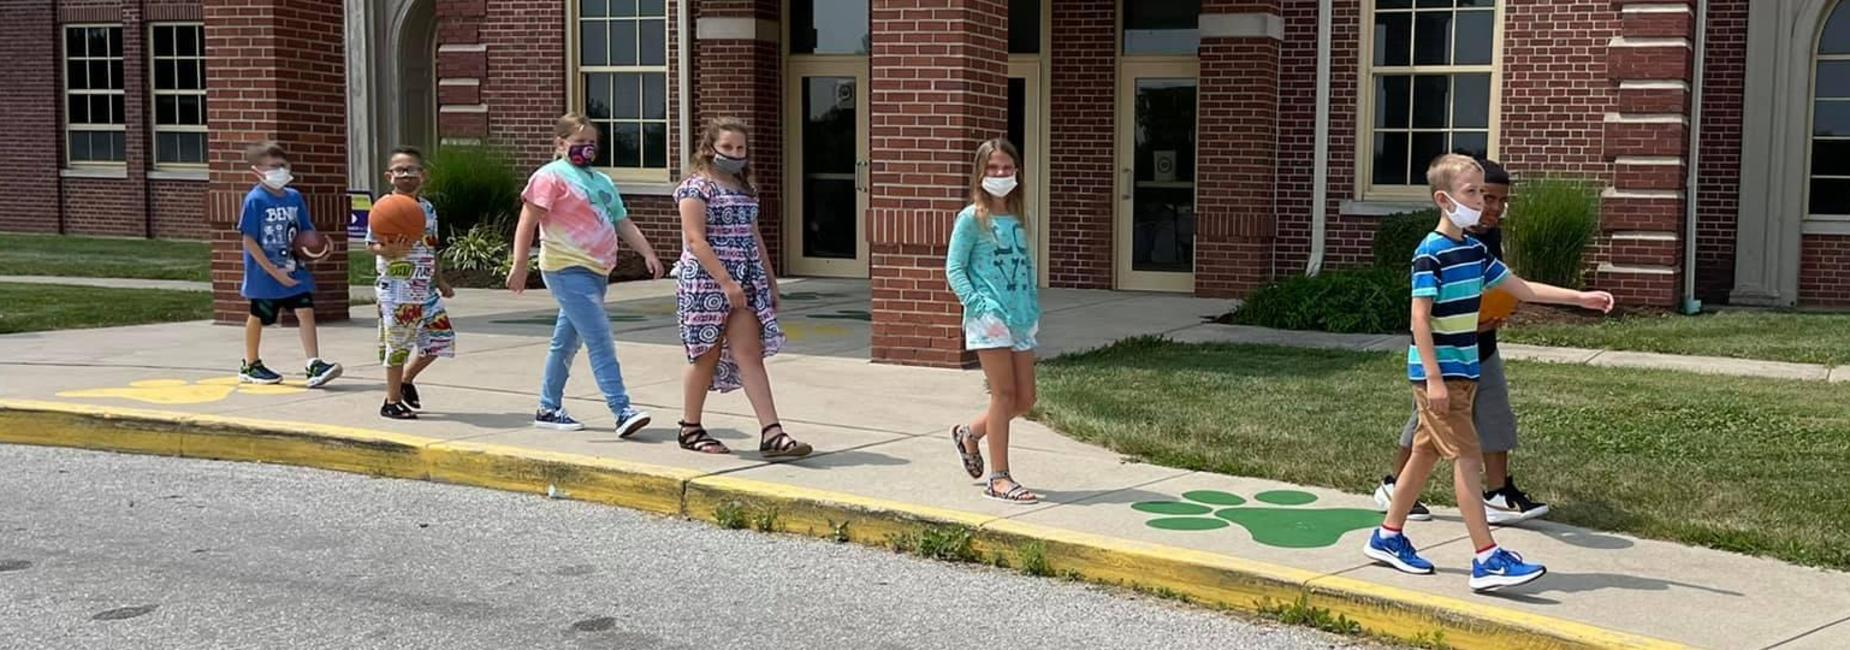 Fairview students on their way to recess!